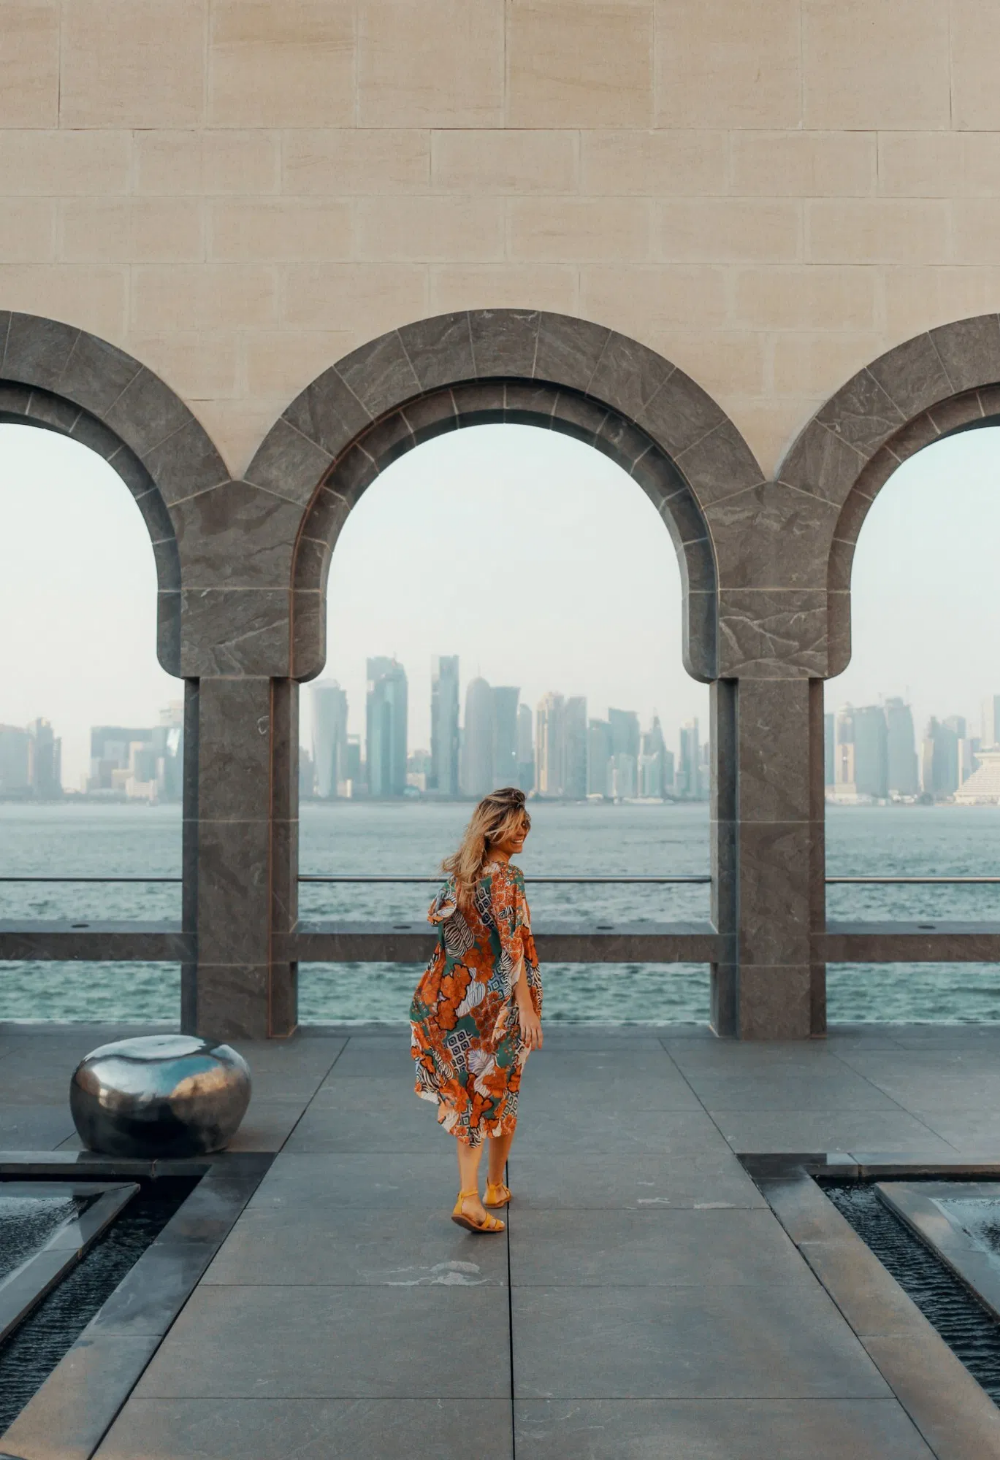 31 THINGS TO KNOW BEFORE TRAVELING TO QATAR